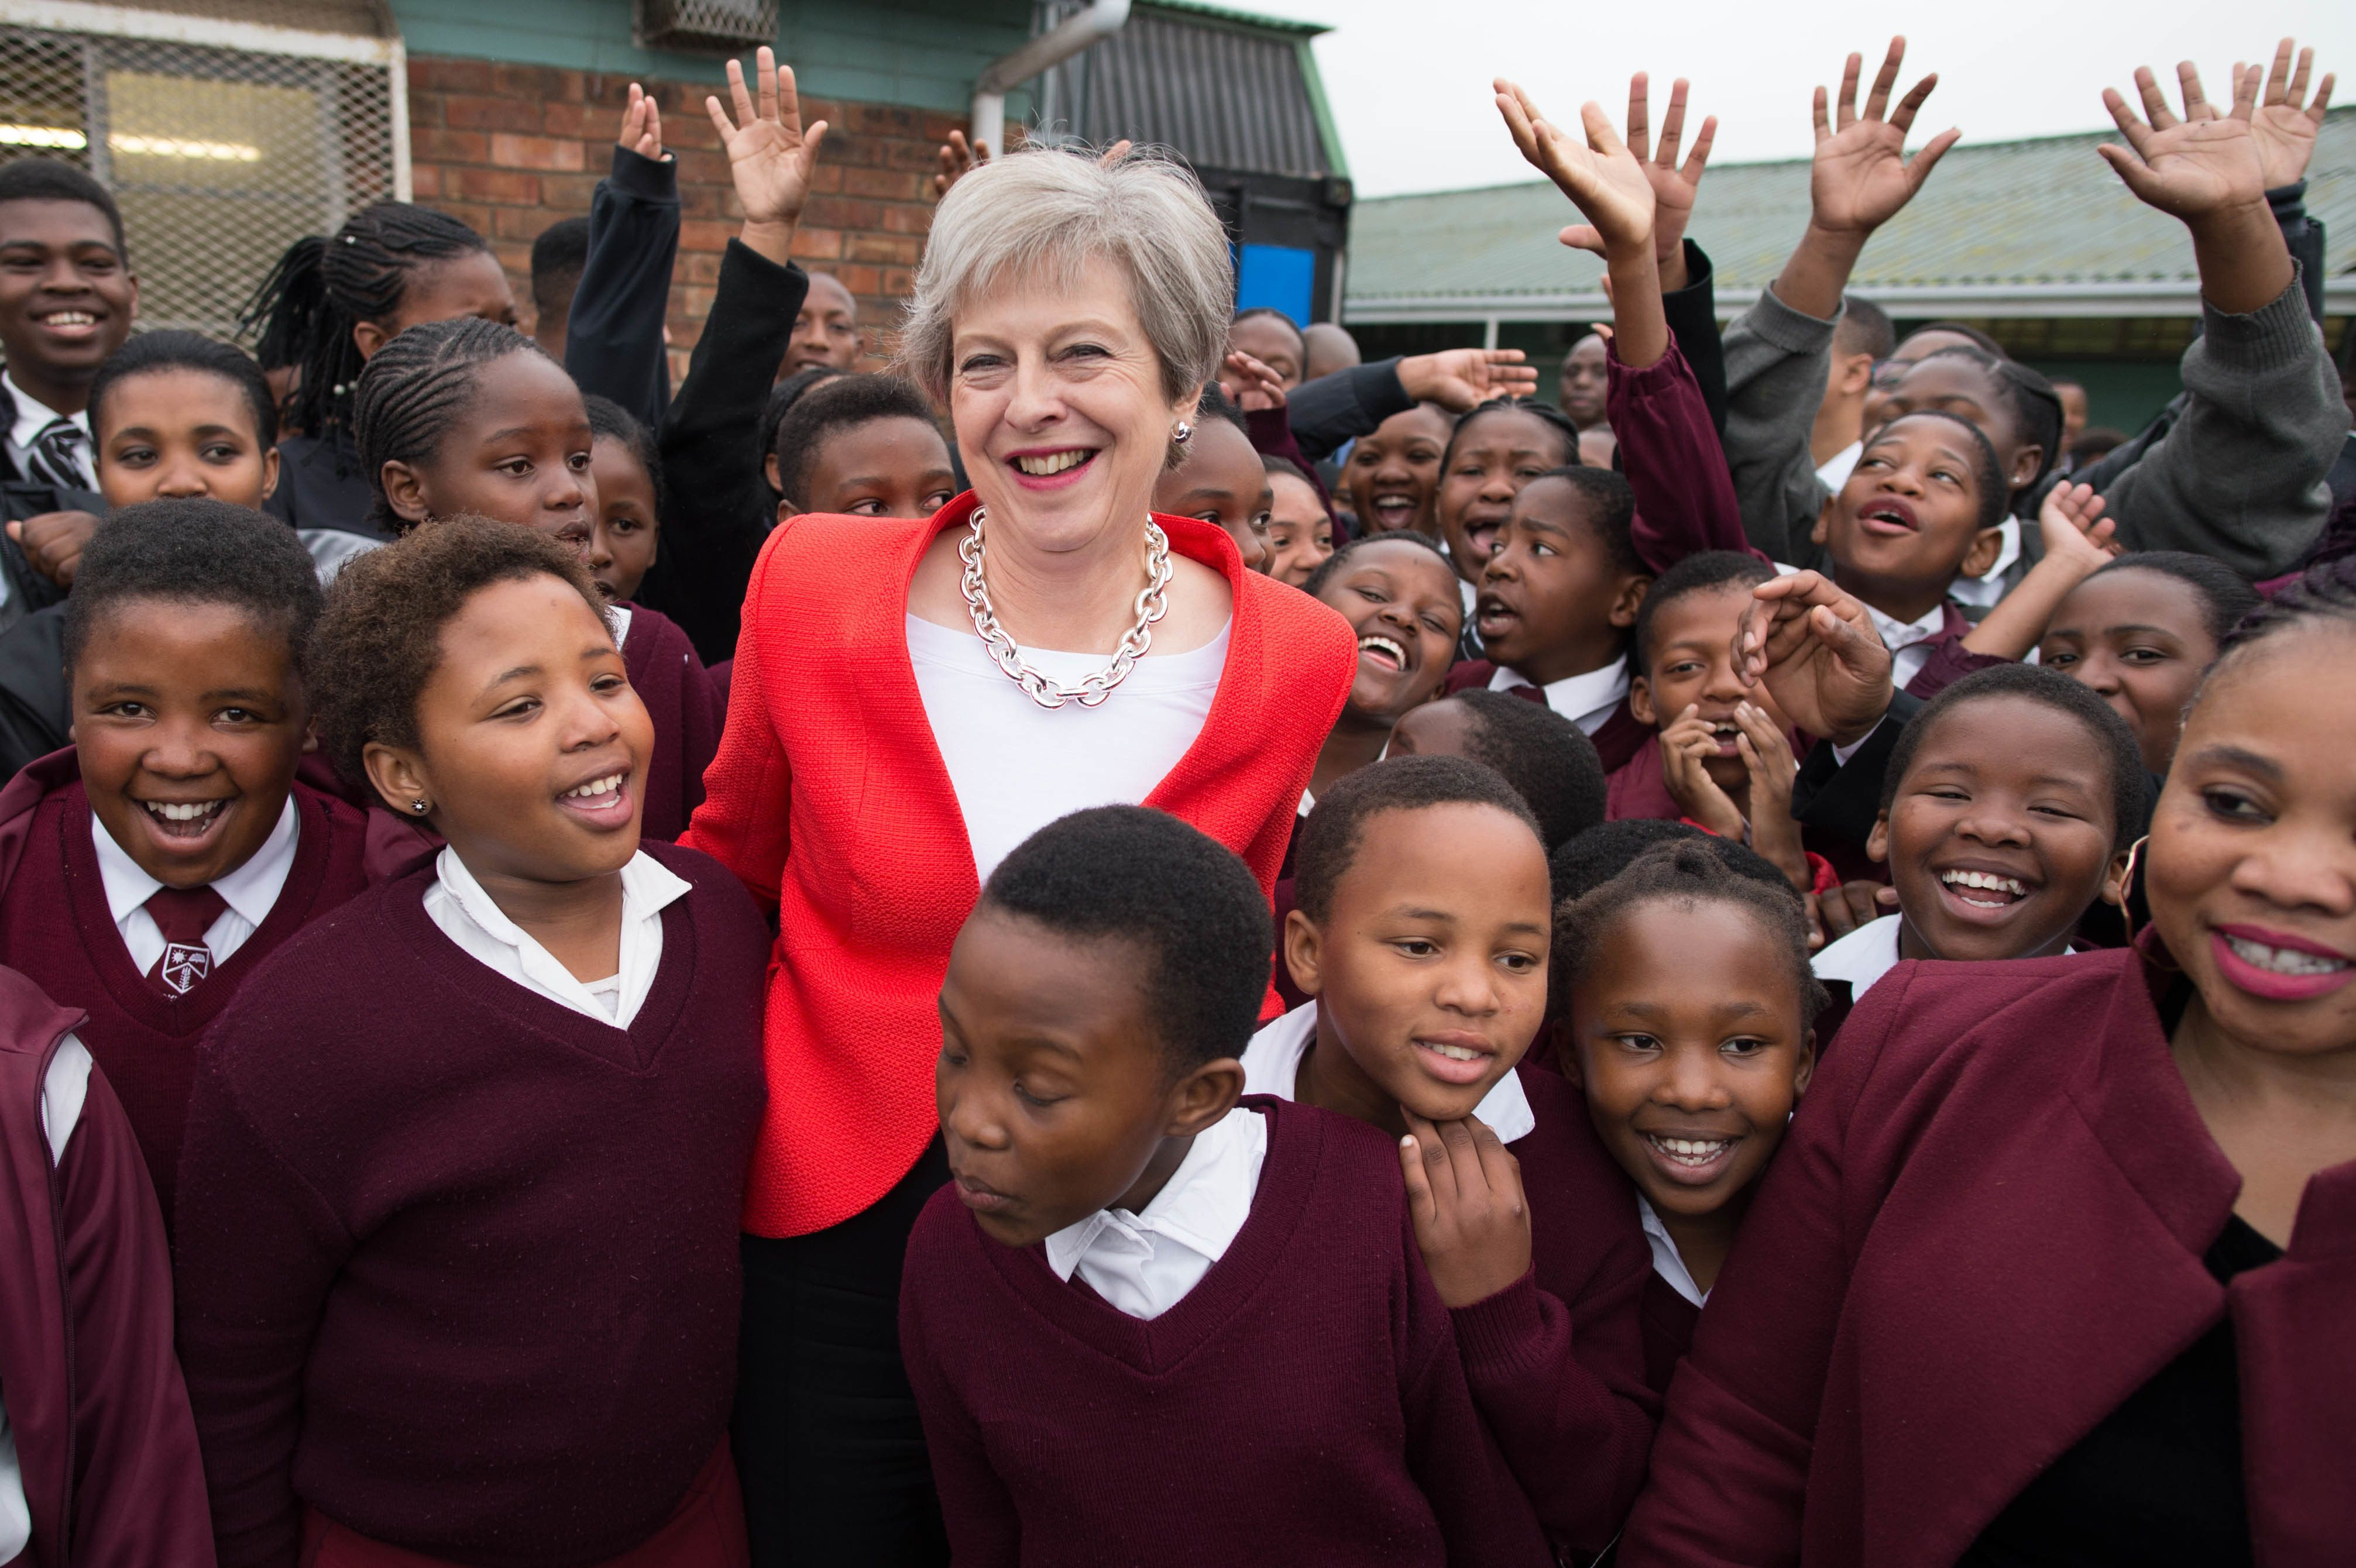 Theresa May Has Been Dancing With Schoolchildren And Everyone Is